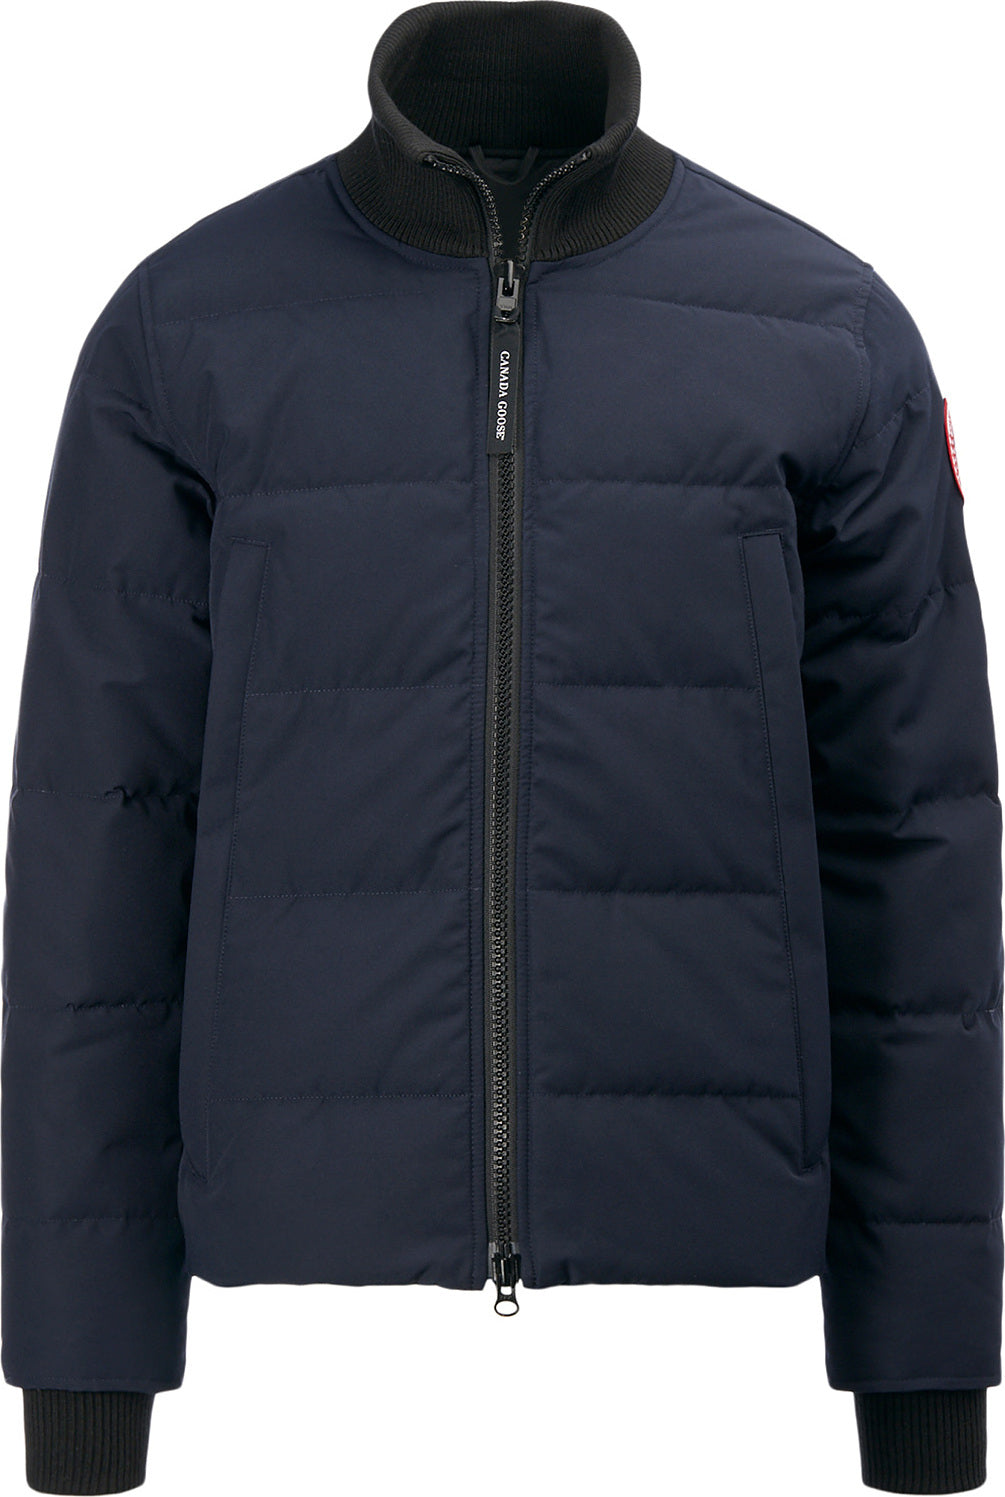 cfc81429c Woolford Jacket - Men's